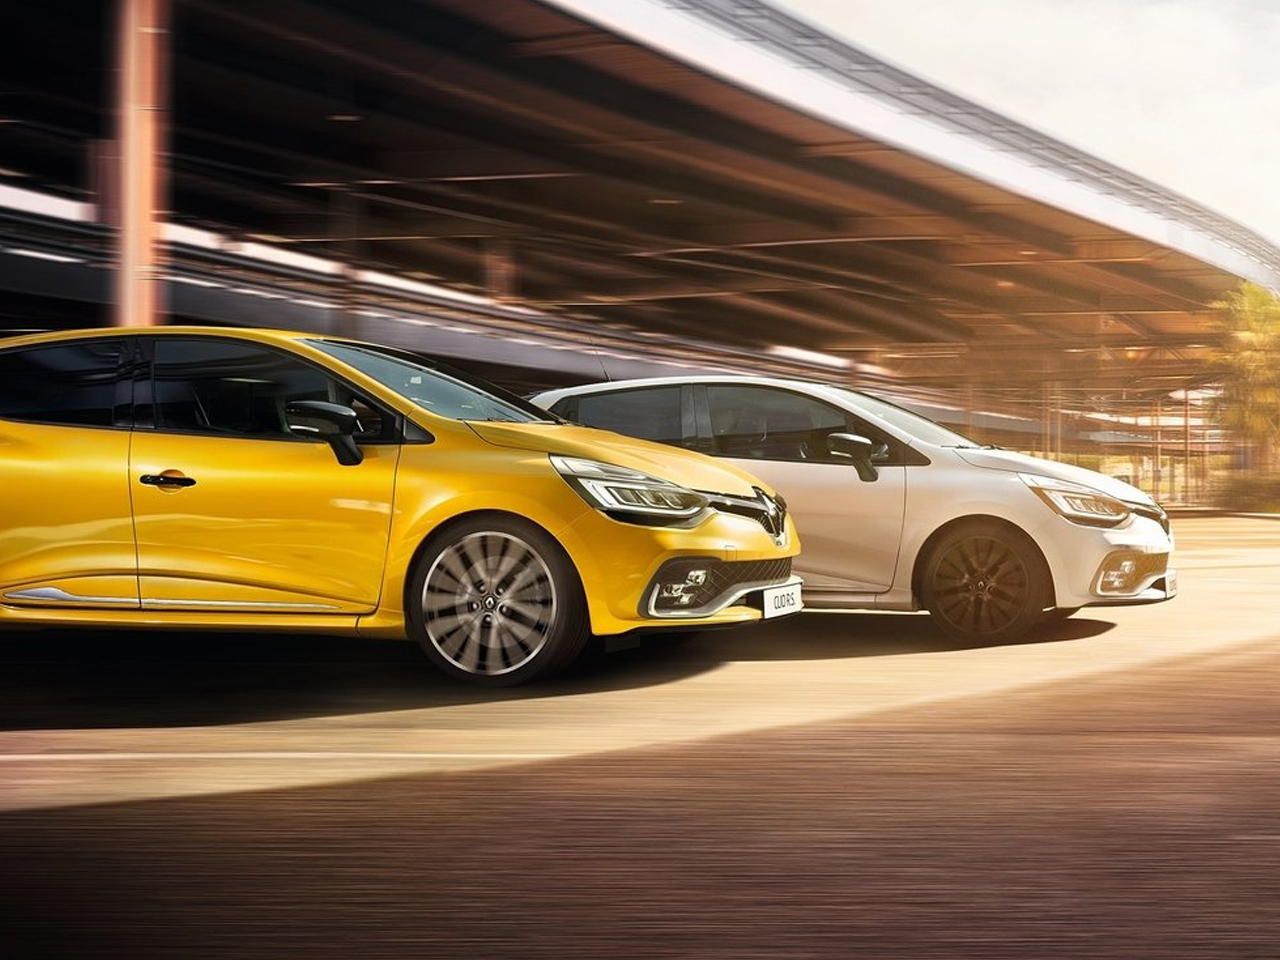 Lateral Renault Clio R.S.